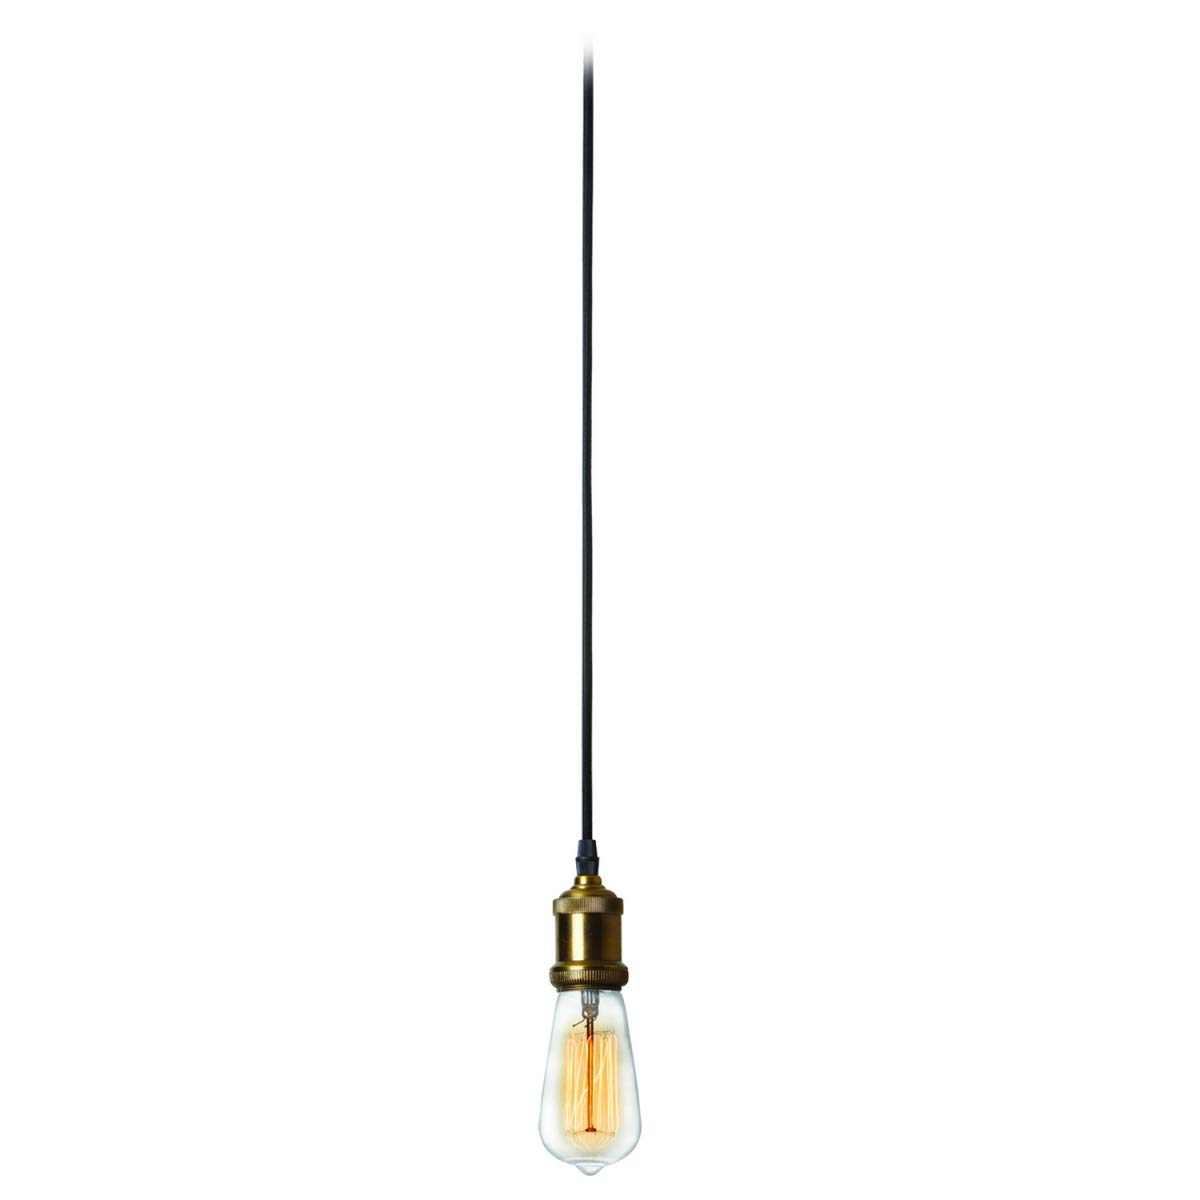 Vintage Vs Antique >> Dainolite 409 102p Vs Vintage Pendant Lighting 1 Antique